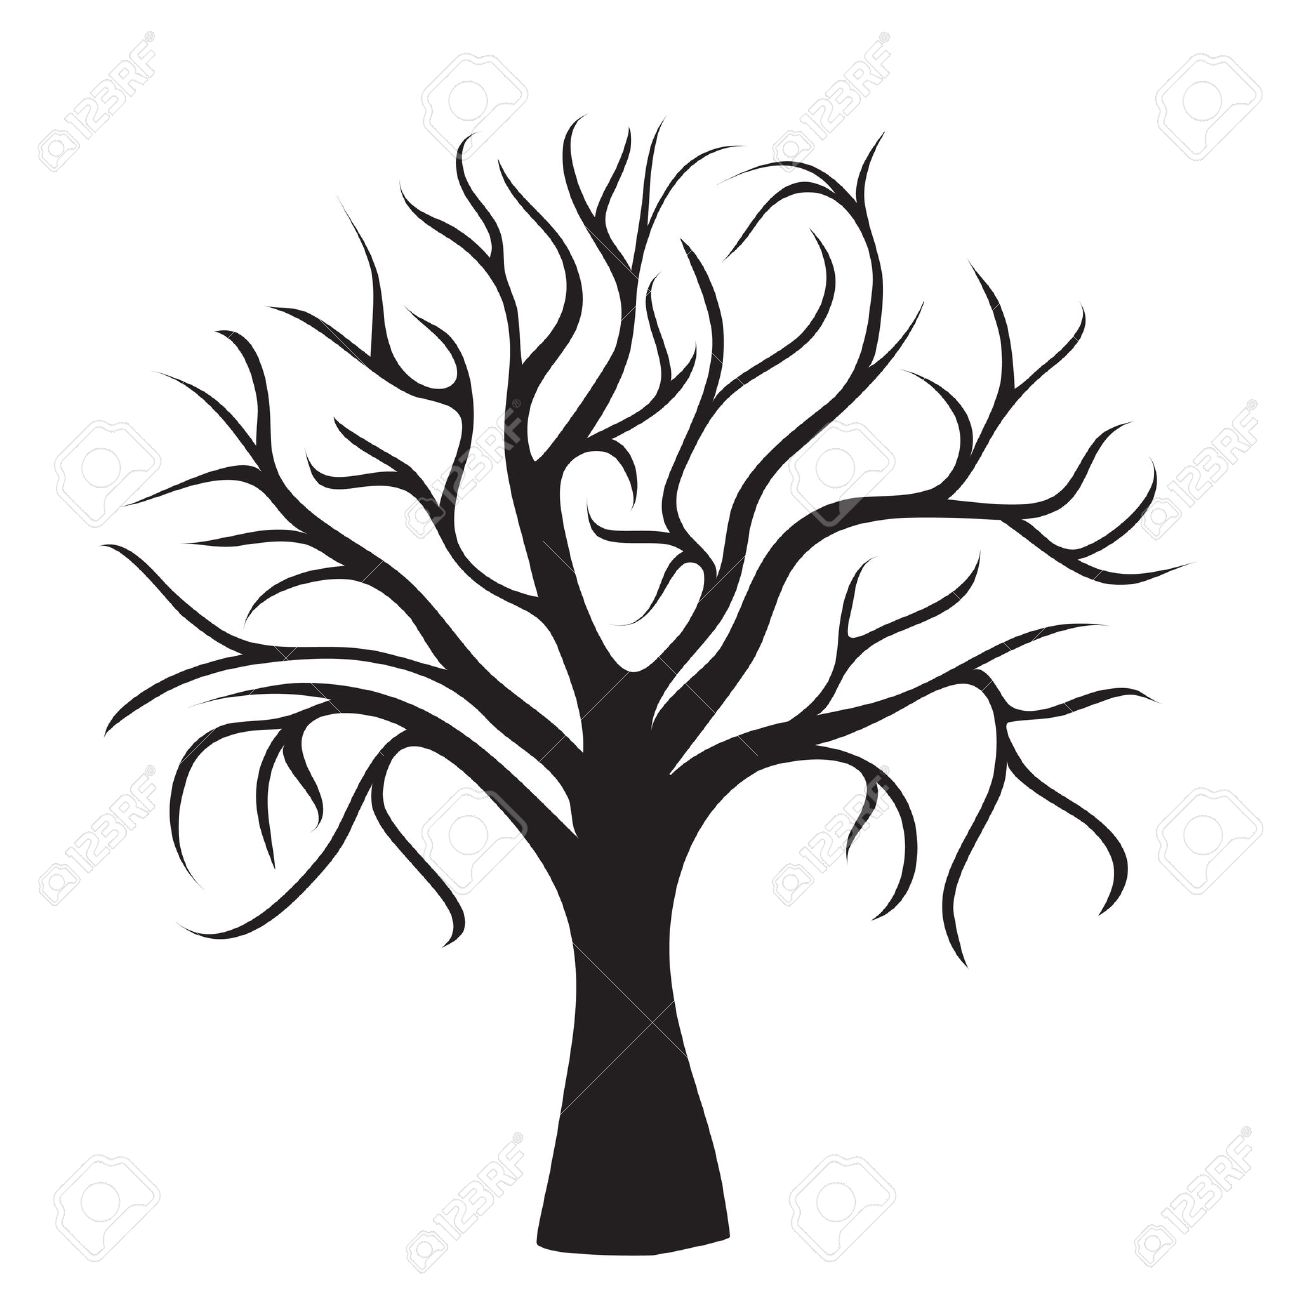 Black Tree Without Leaves On White Background Vector Image Royalty